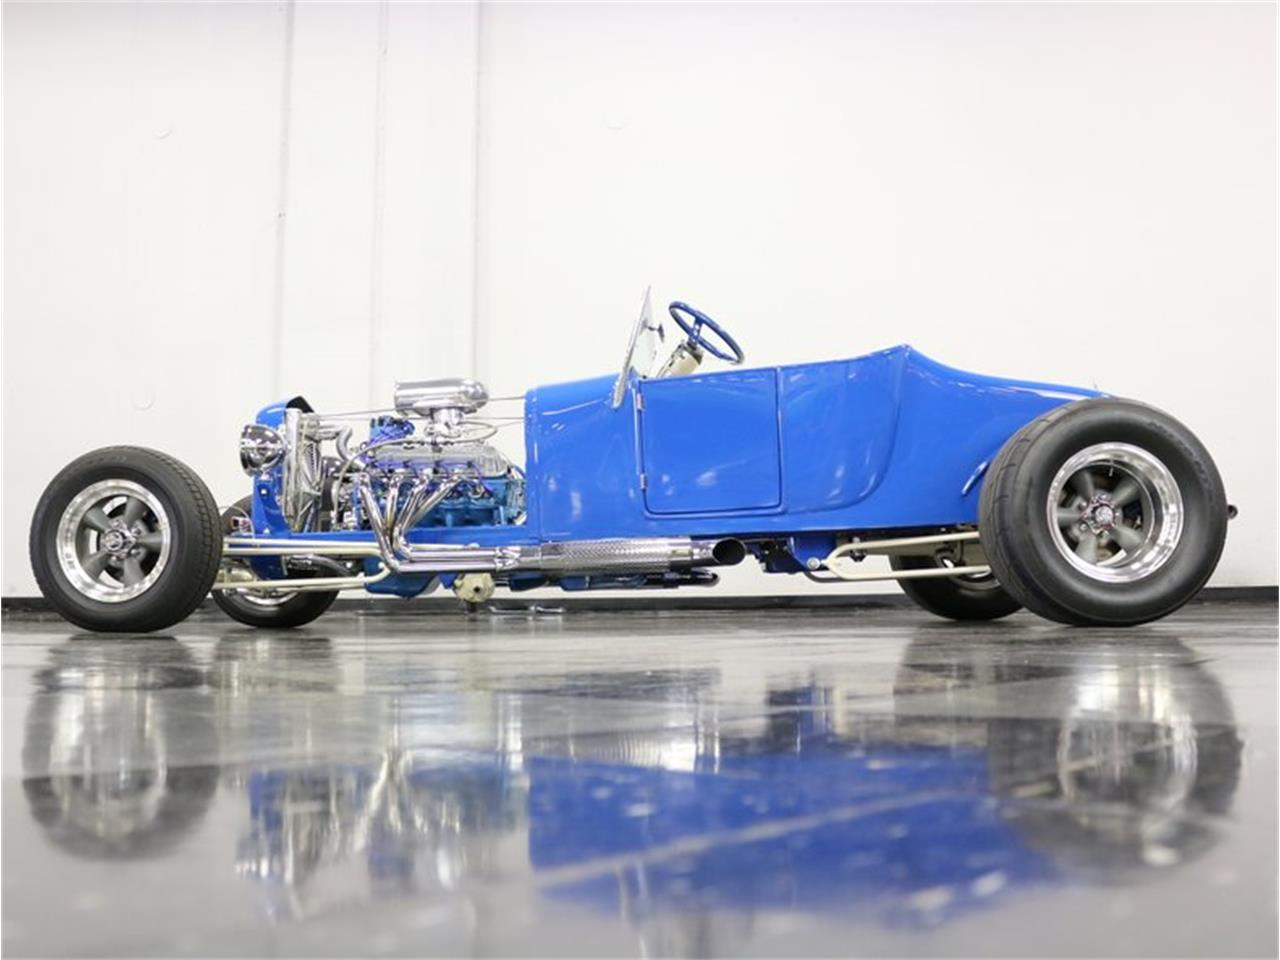 Large Picture of 1927 Model T - $29,995.00 Offered by Streetside Classics - Dallas / Fort Worth - MAZM